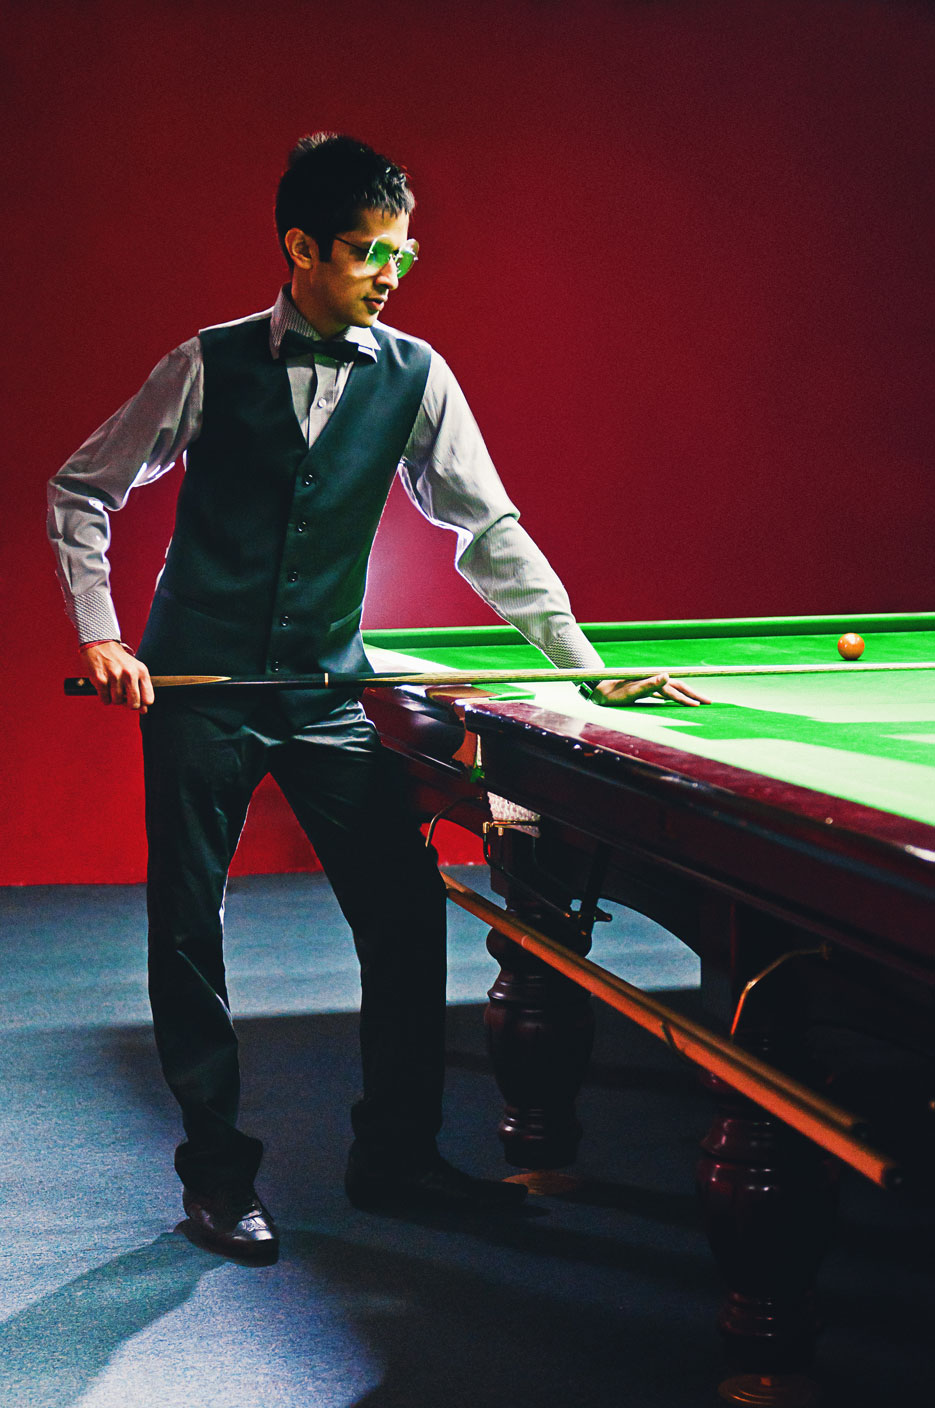 Portraits of a Snooker Player, Aman Goel. Photography by professional Indian photographer Naina Redhu of Naina.co